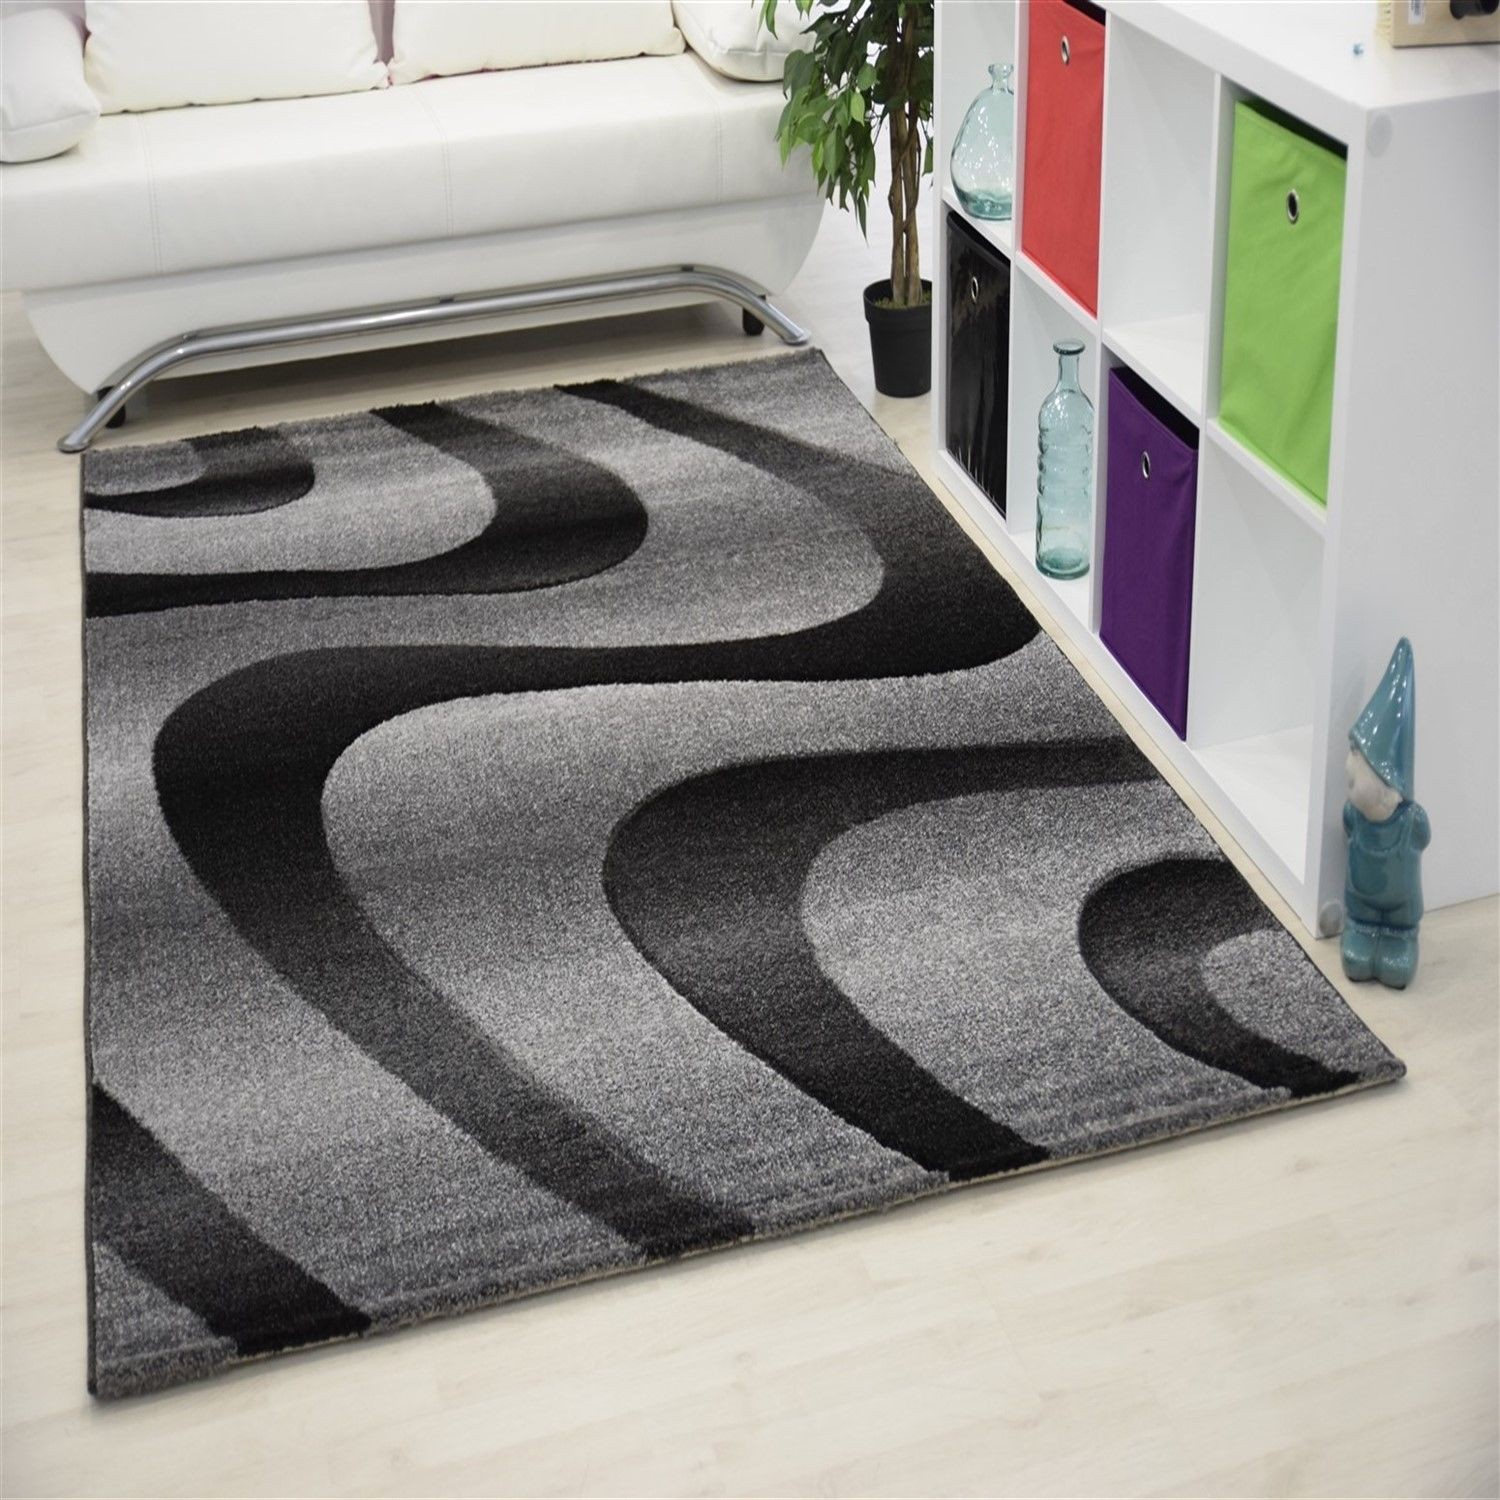 tapis pour salon id es de d coration int rieure french decor